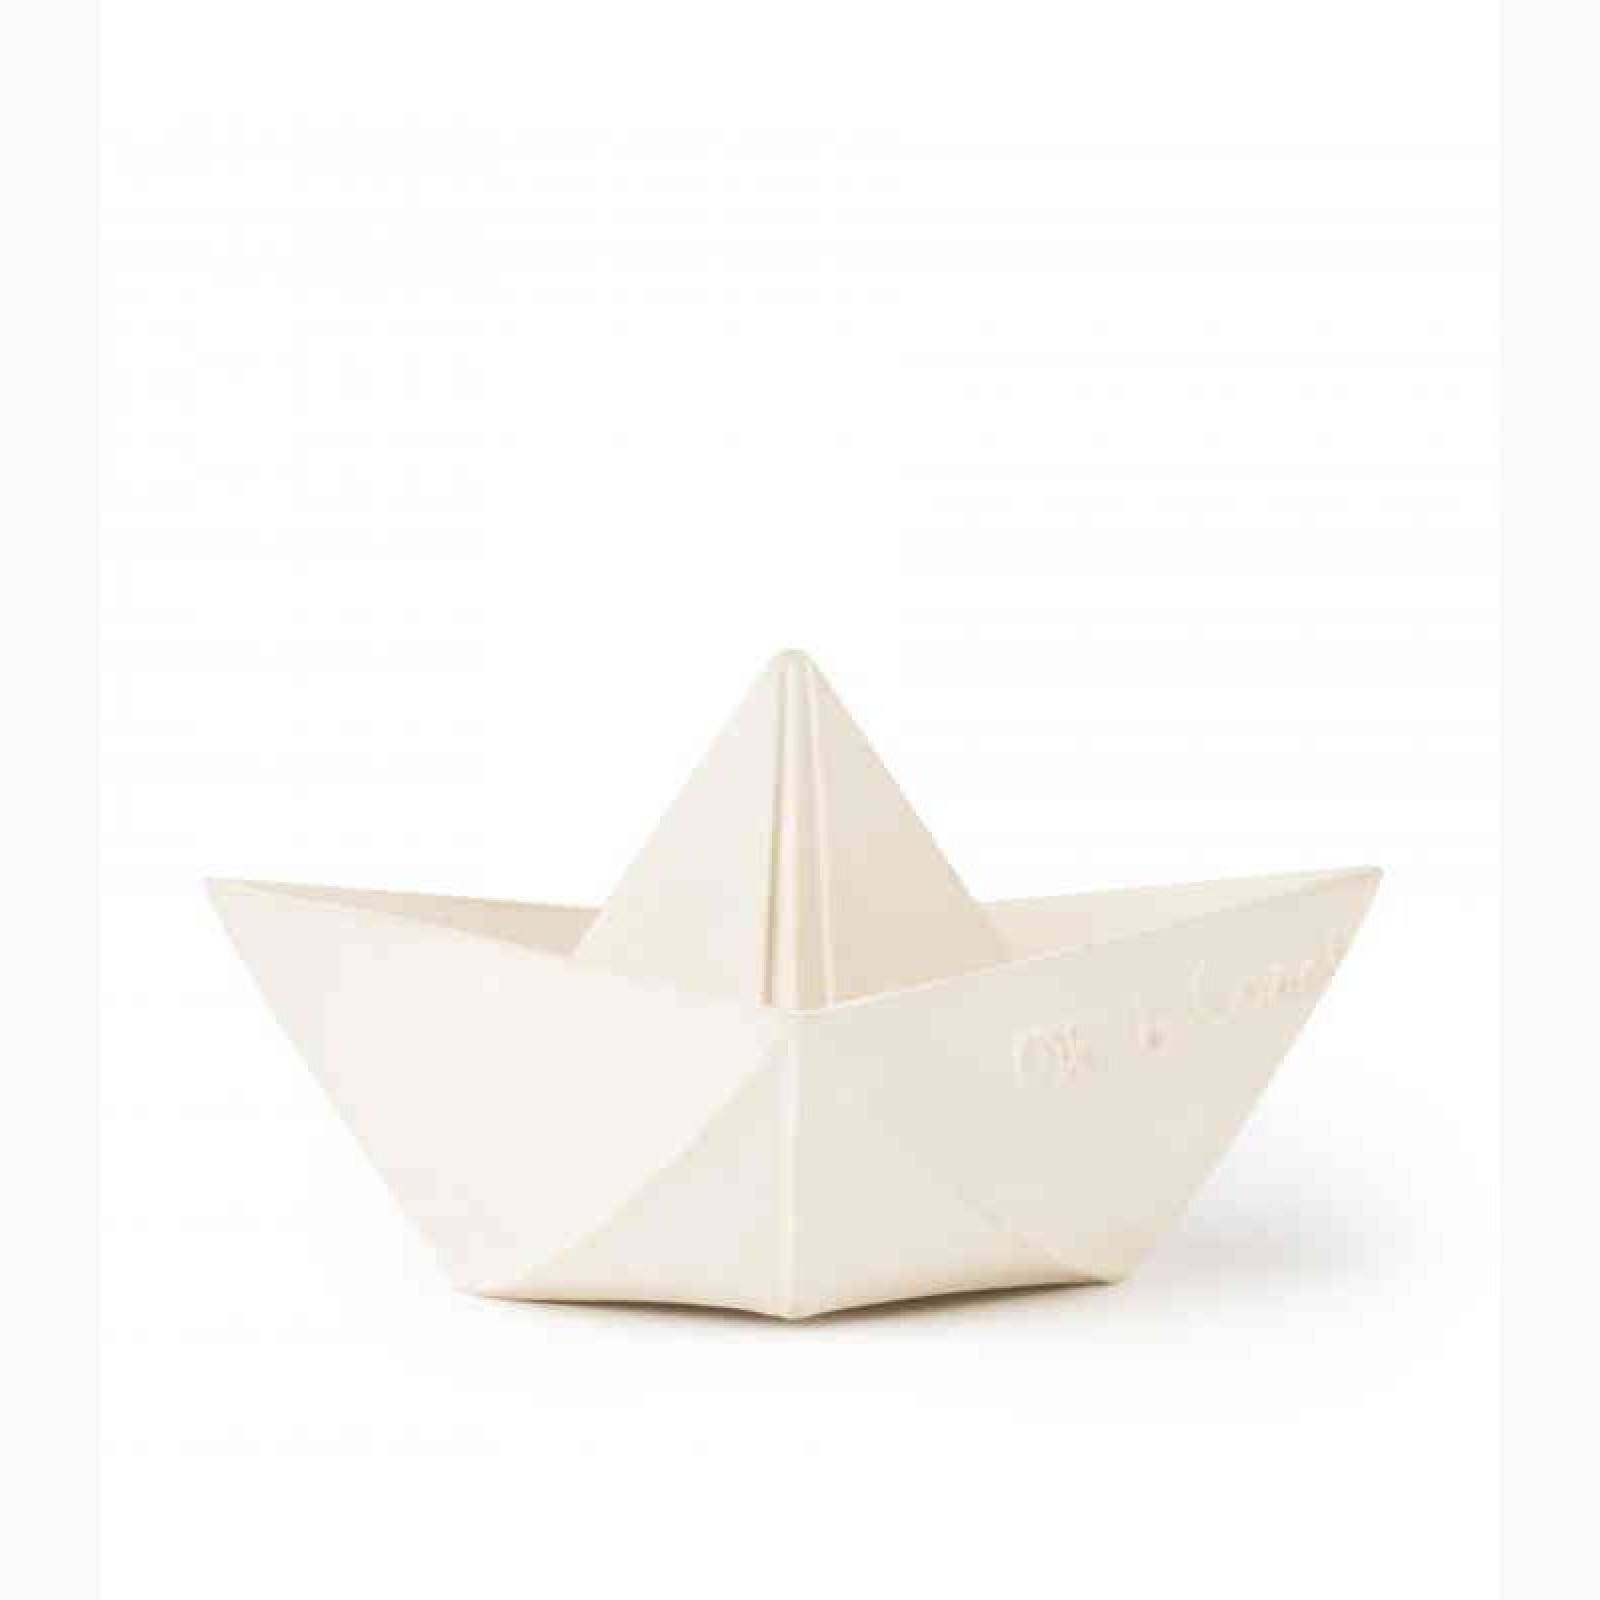 Origami Boat Natural Rubber Bath Toy In White 0+ thumbnails